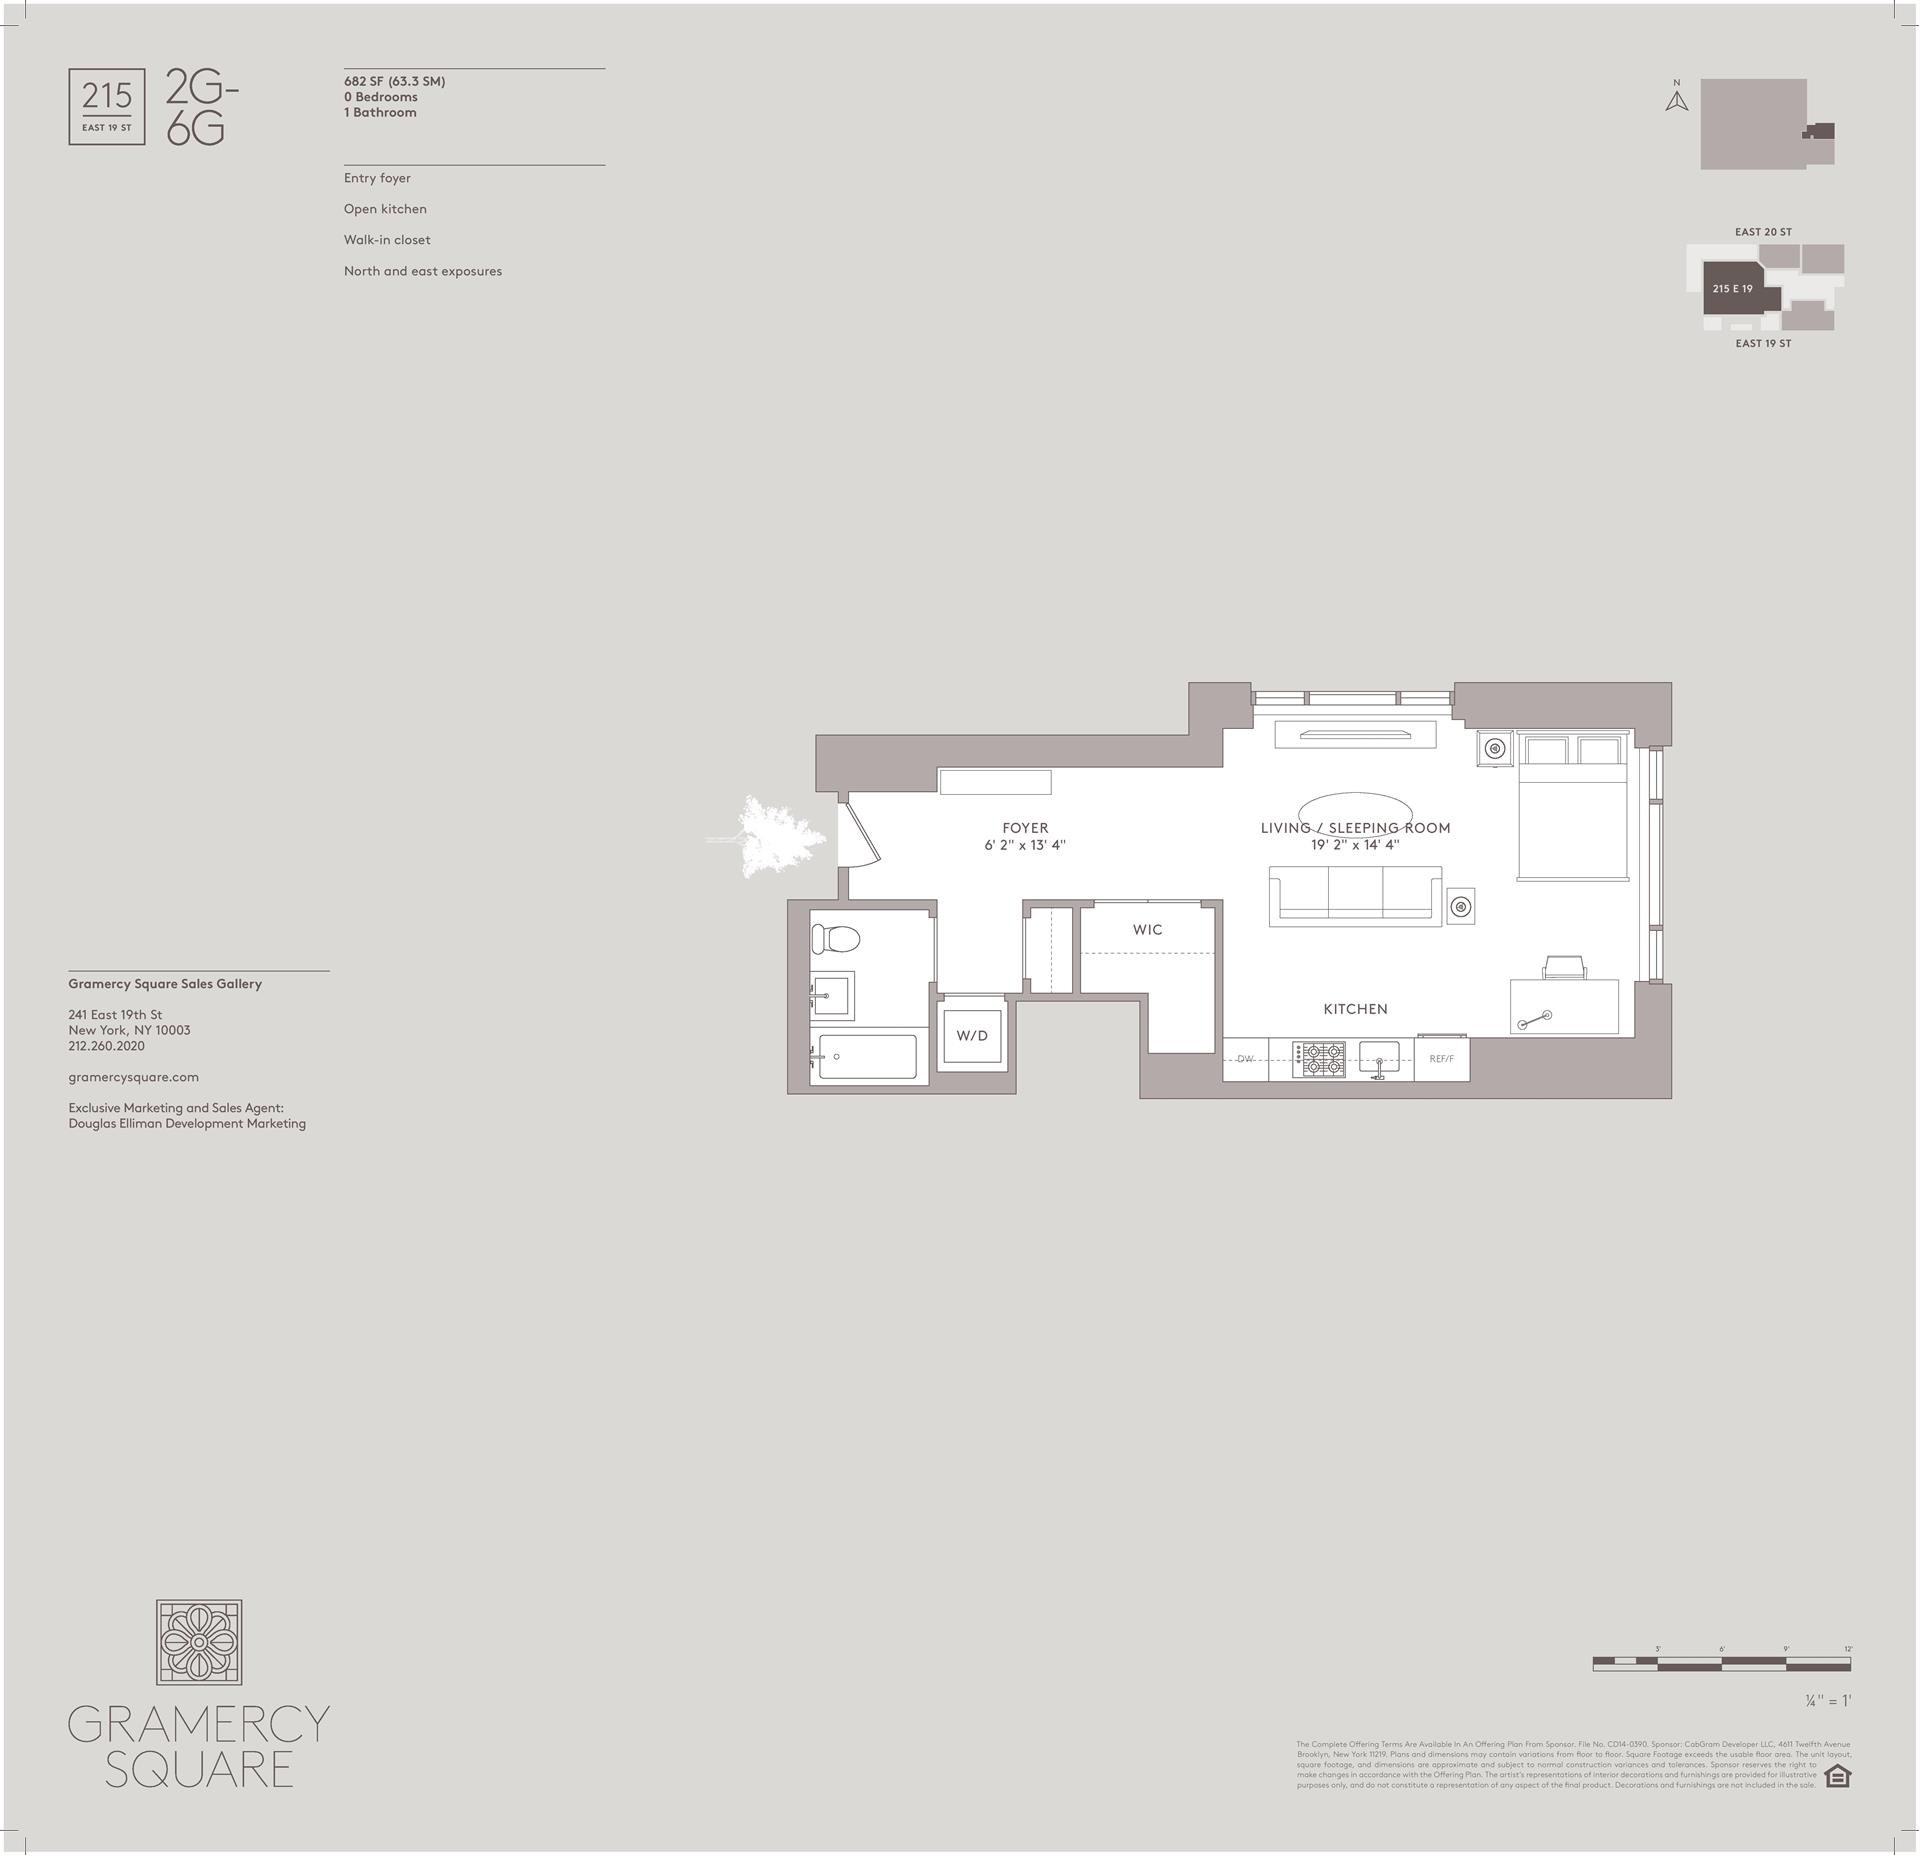 Floor plan of Gramercy Square, 215 East 19th St, 6G - Gramercy - Union Square, New York